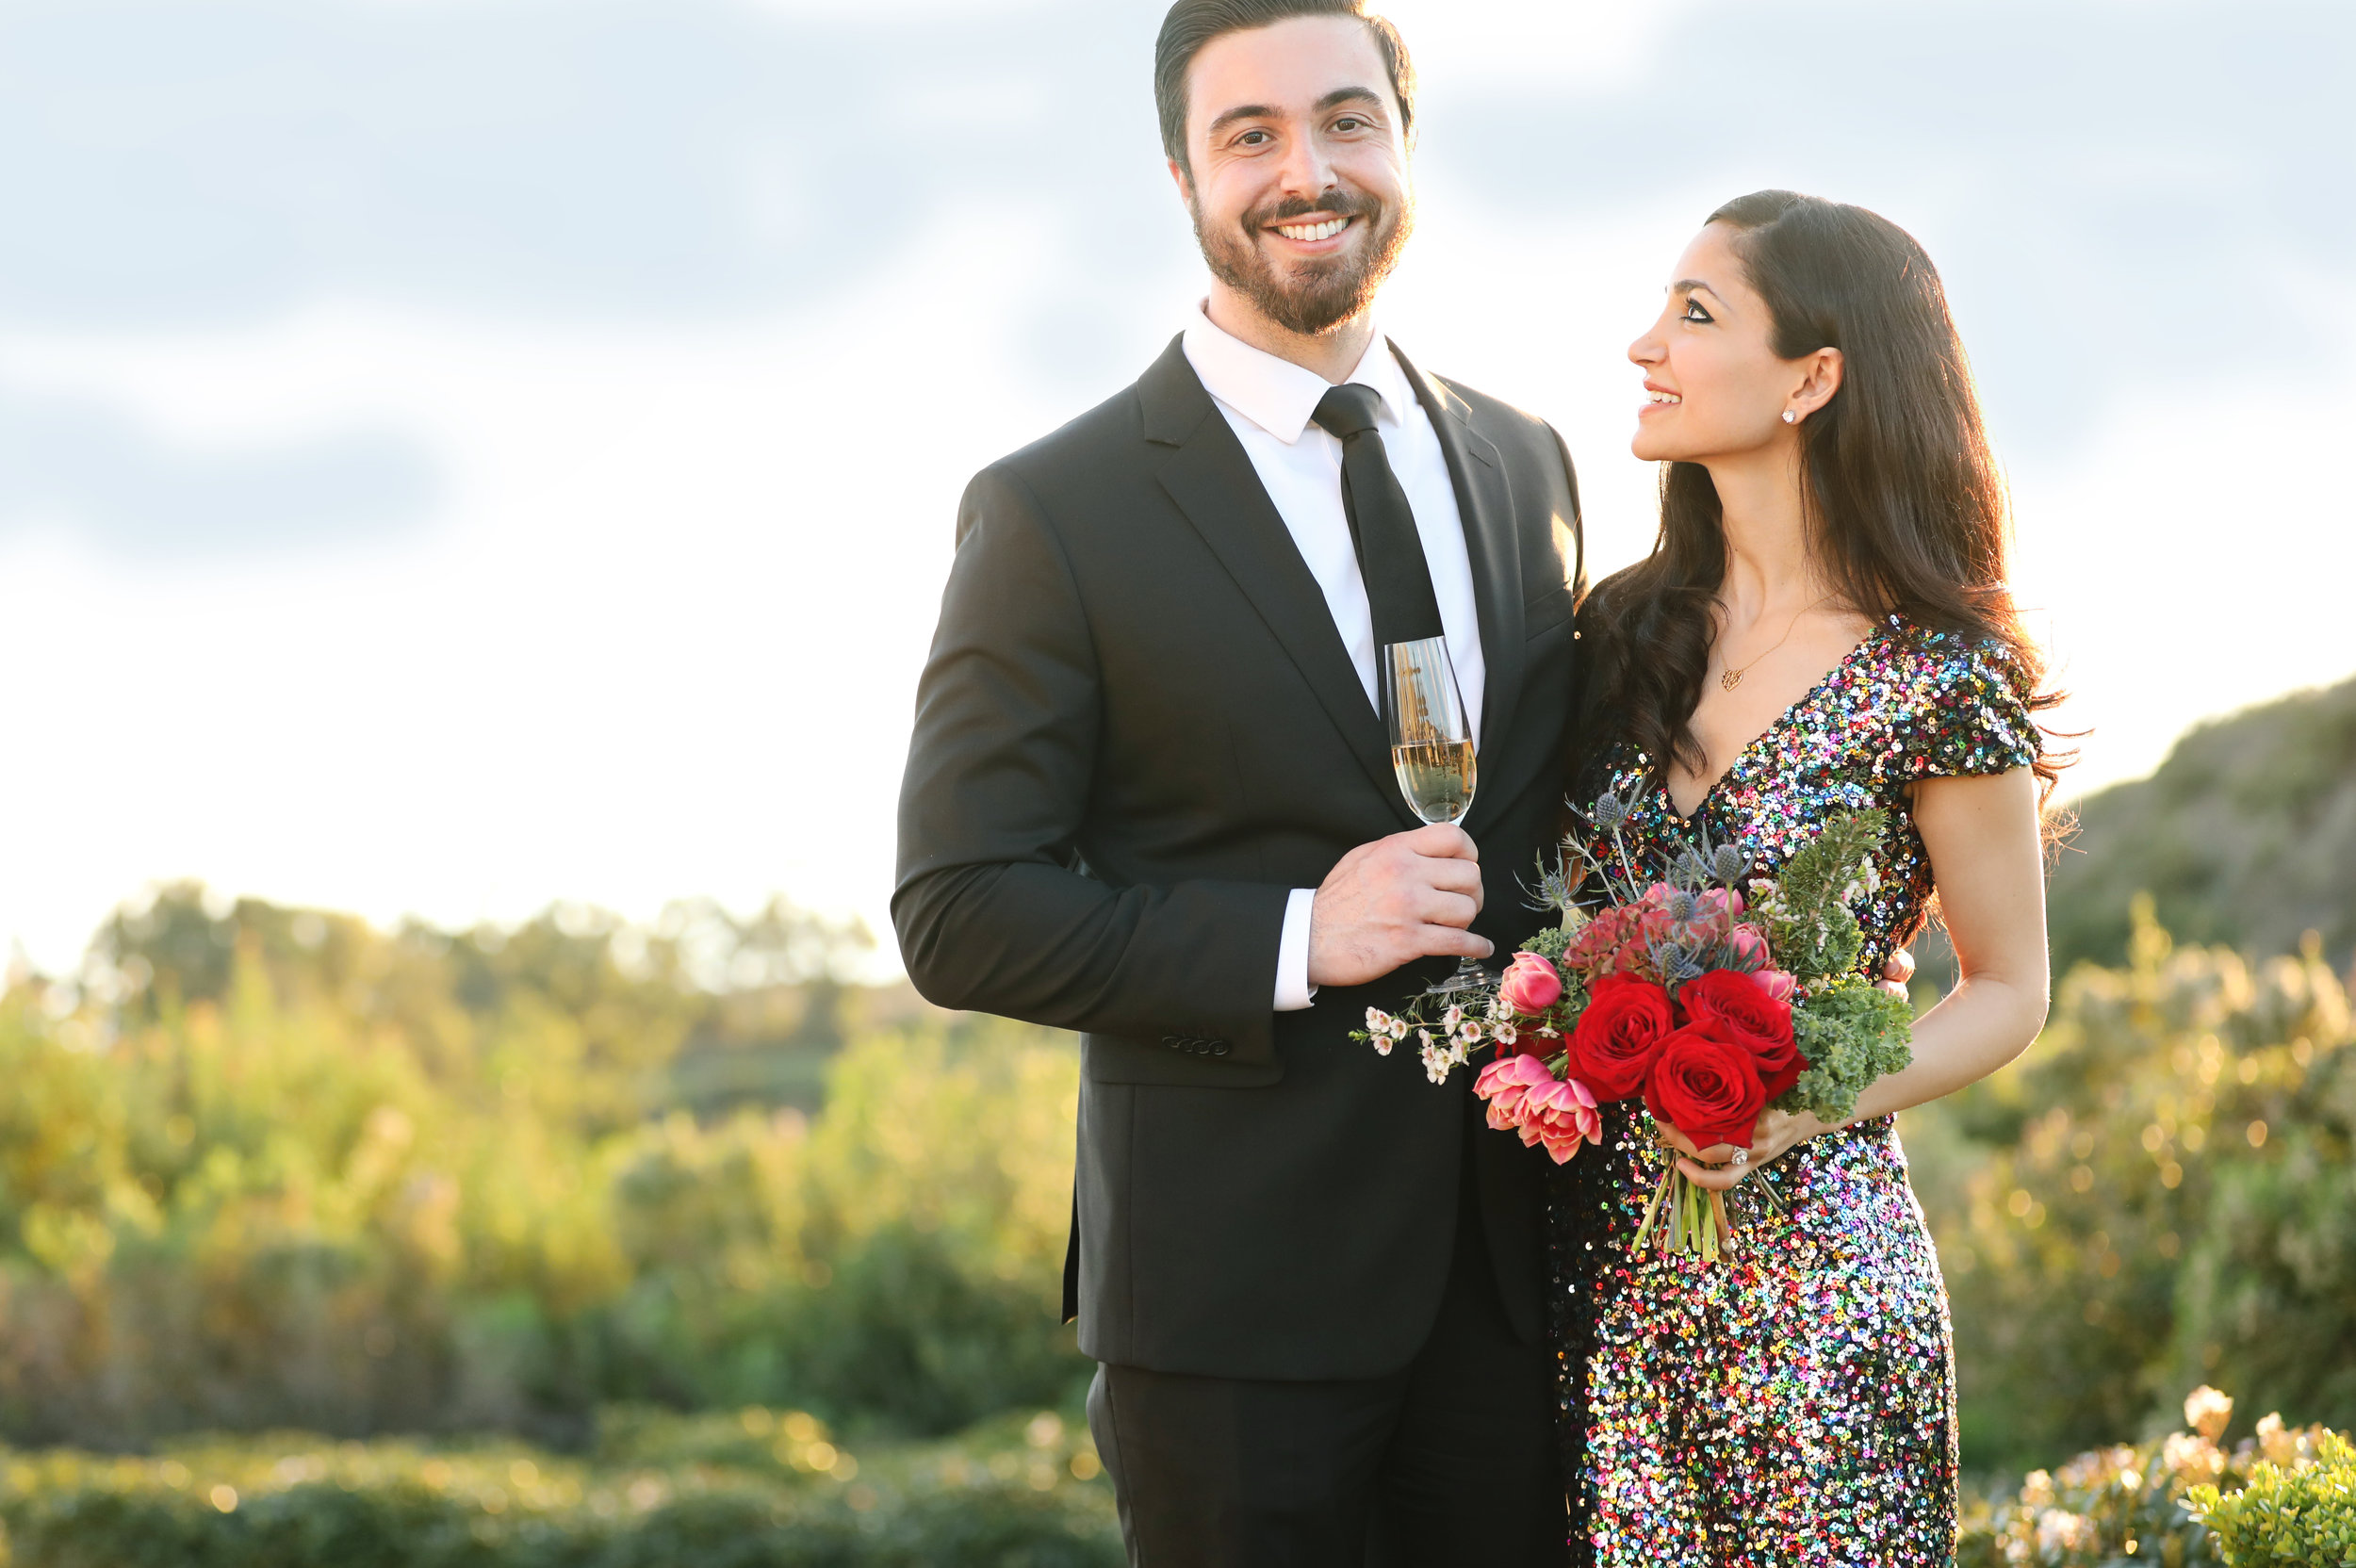 Red roses and champaign for this engaged couple as they are photographed in Orange County.